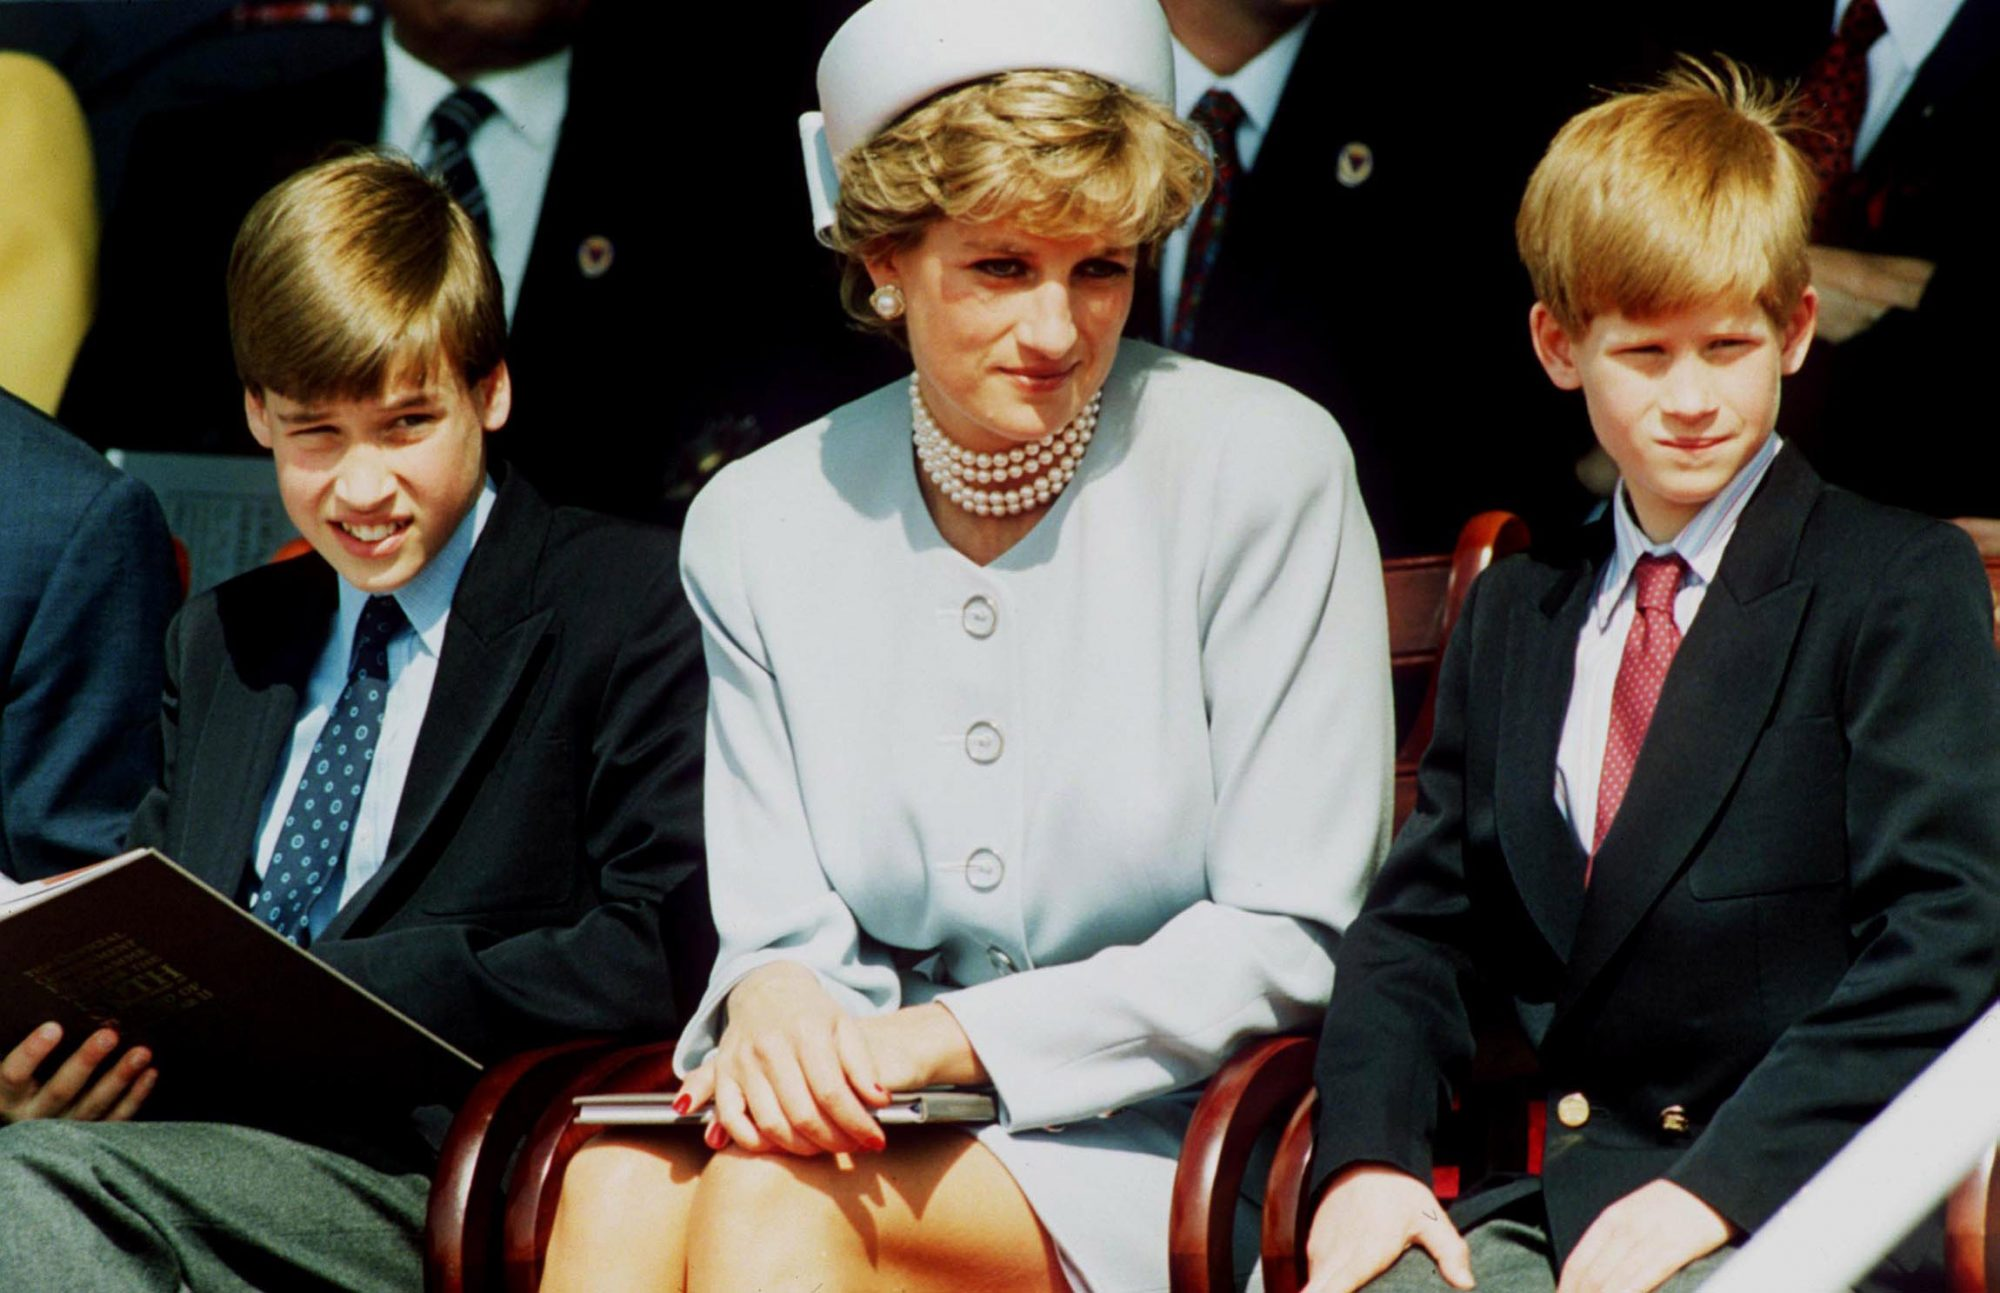 Princes William and Harry Commission a Statue to Honor Princess Diana